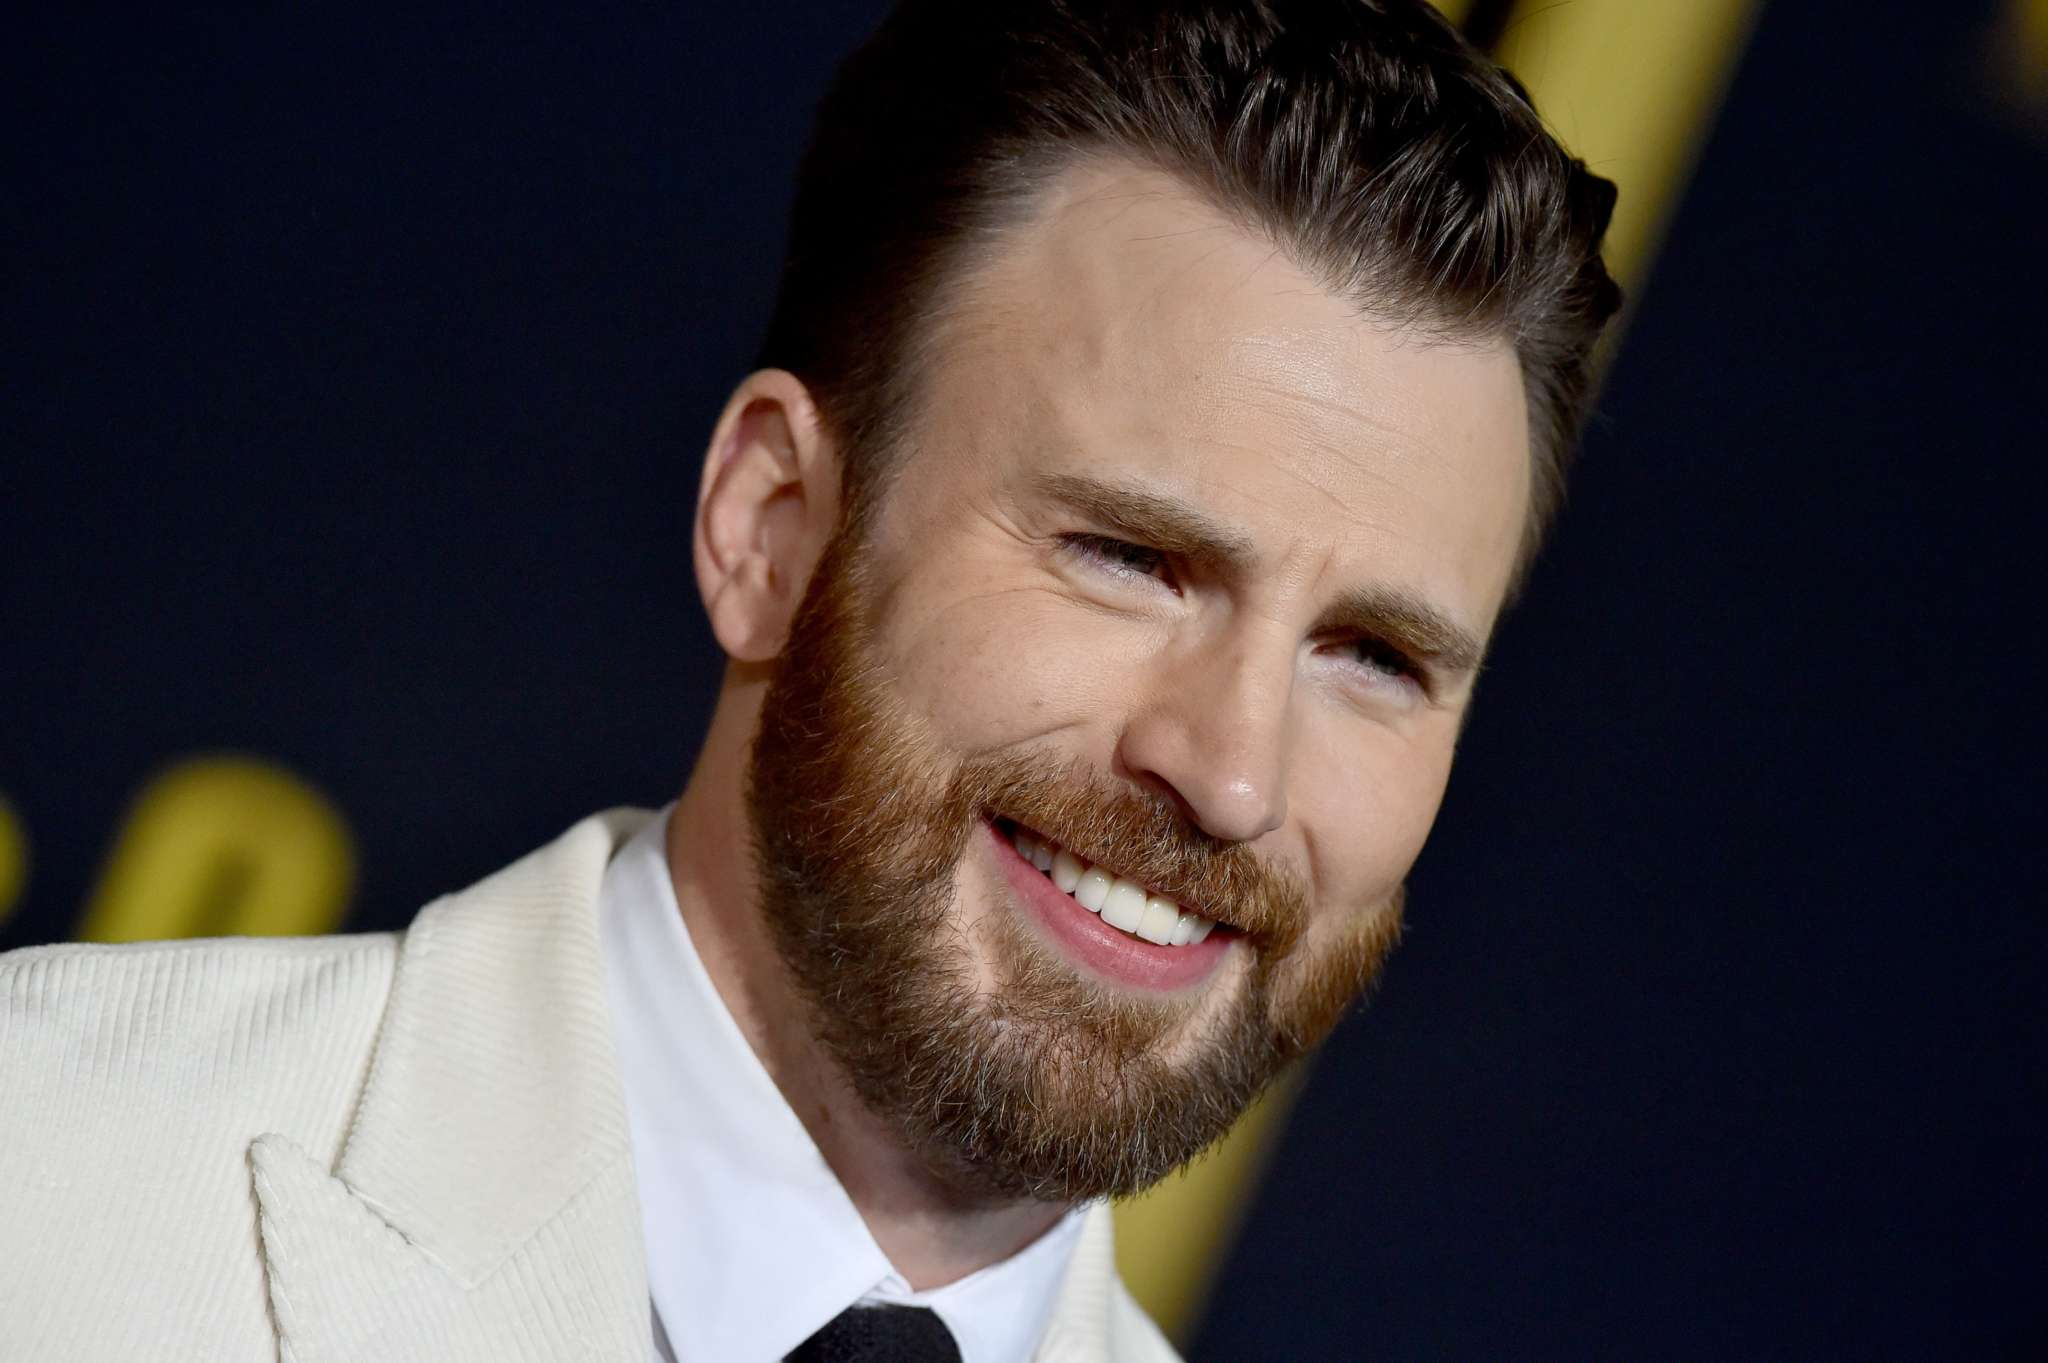 chris-evans-opens-up-about-his-embarrassing-photo-leak